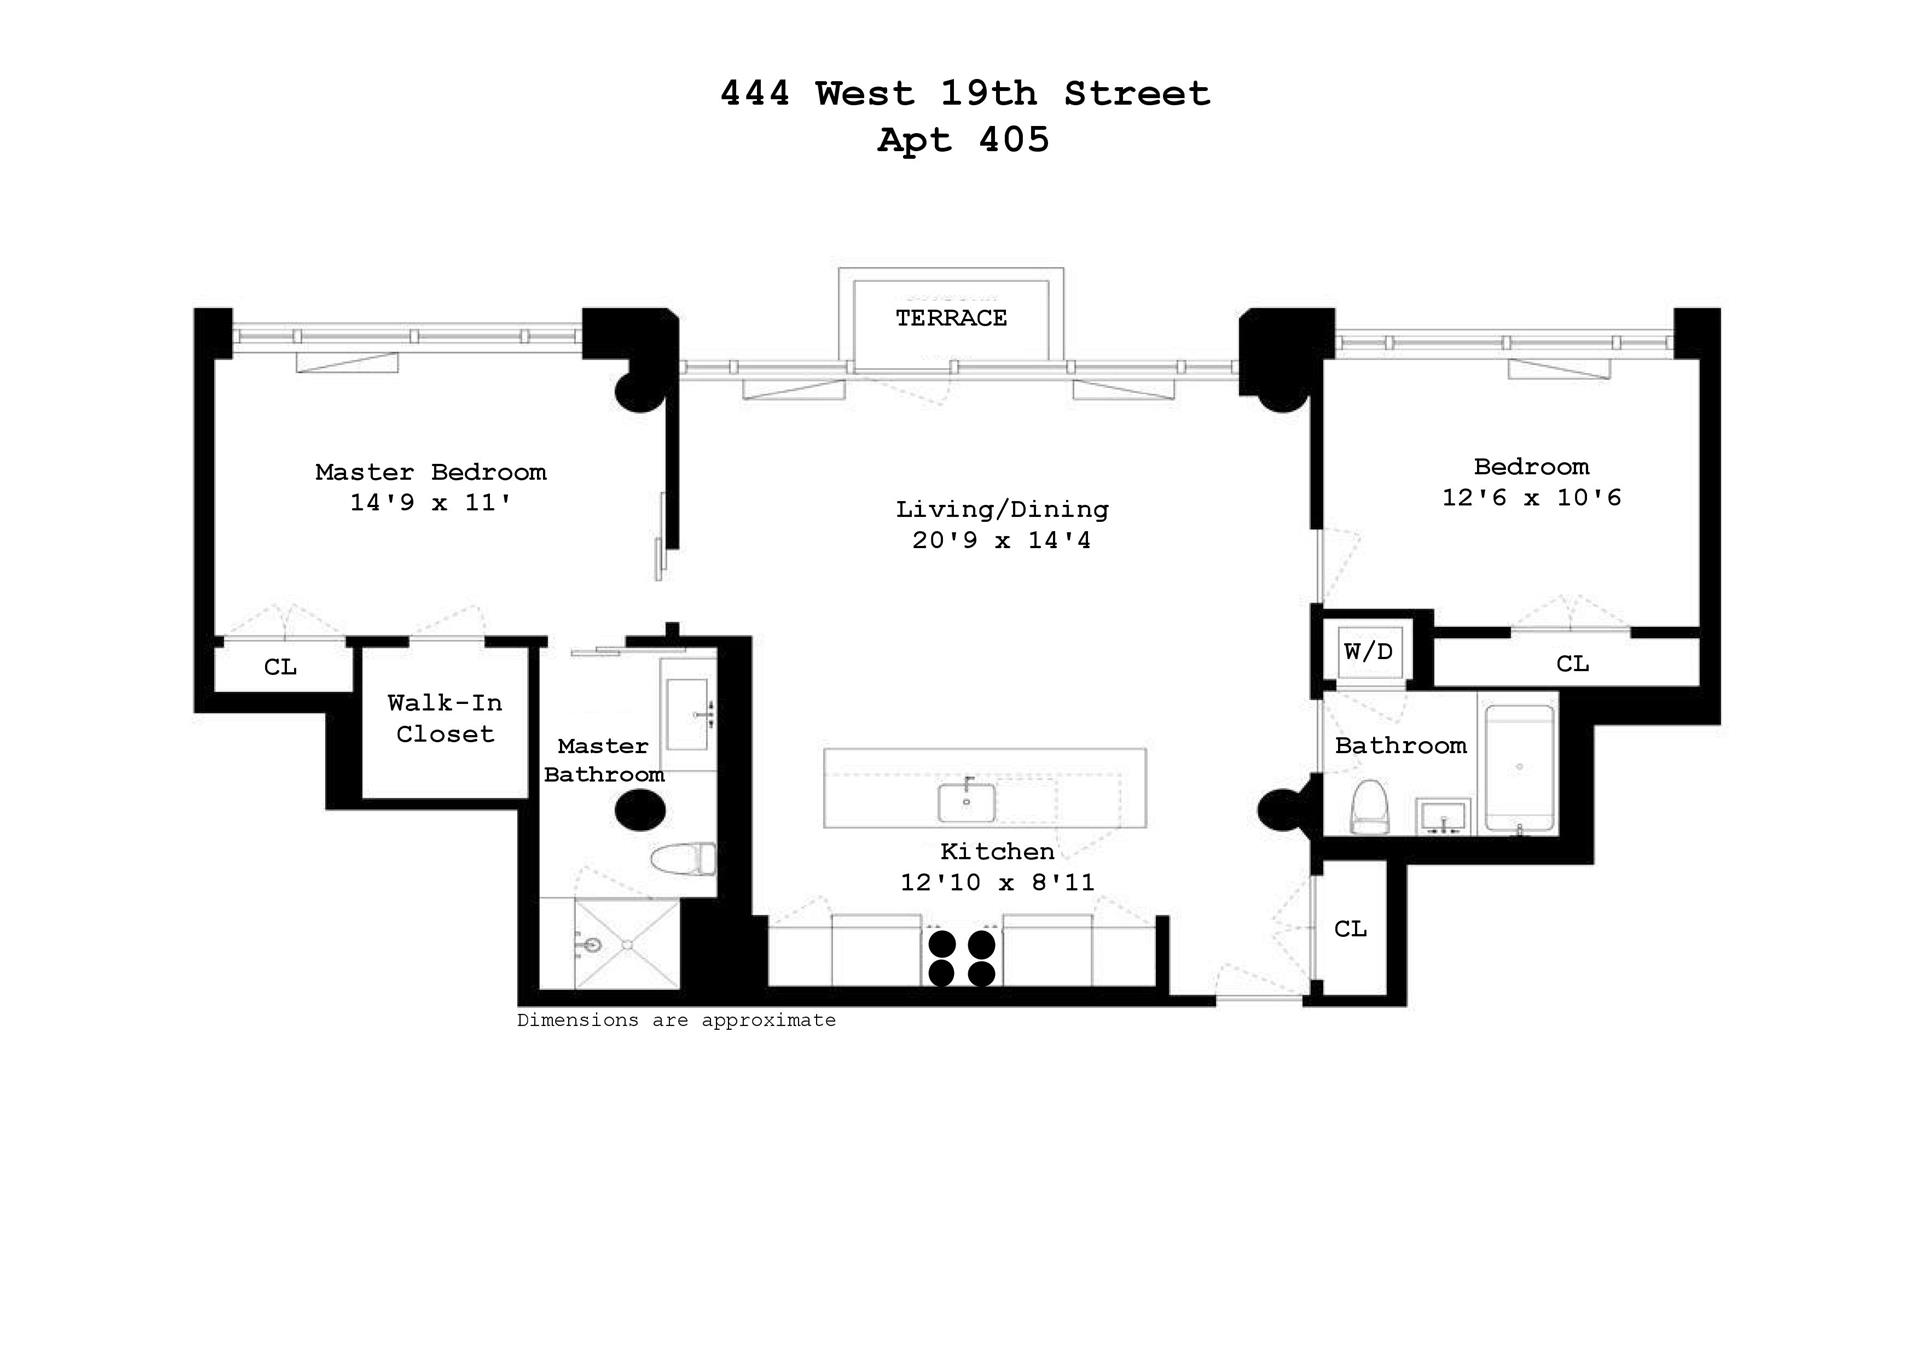 Floor plan of 444 West 19th St, 405 - Chelsea, New York